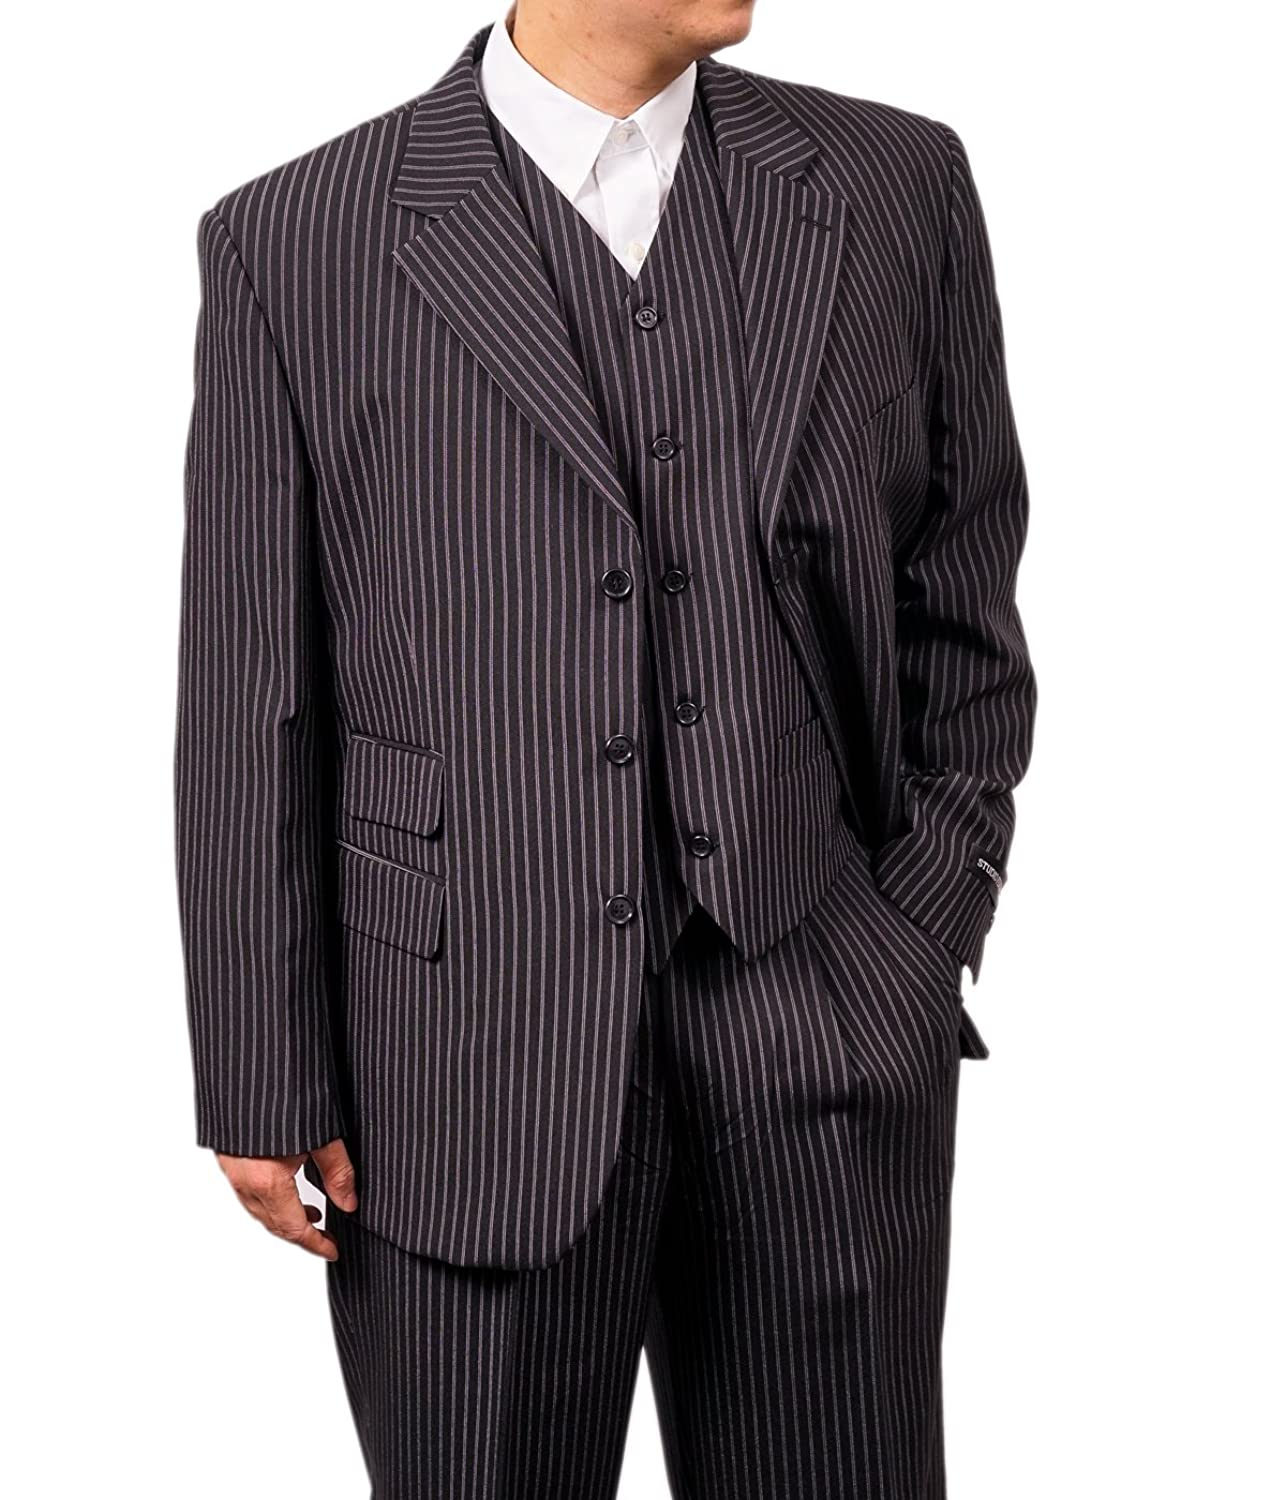 1920s Fashion for Men New Mens 3 Piece Black Gangster Pinstripe Dress Suit with Matching Vest $119.99 AT vintagedancer.com